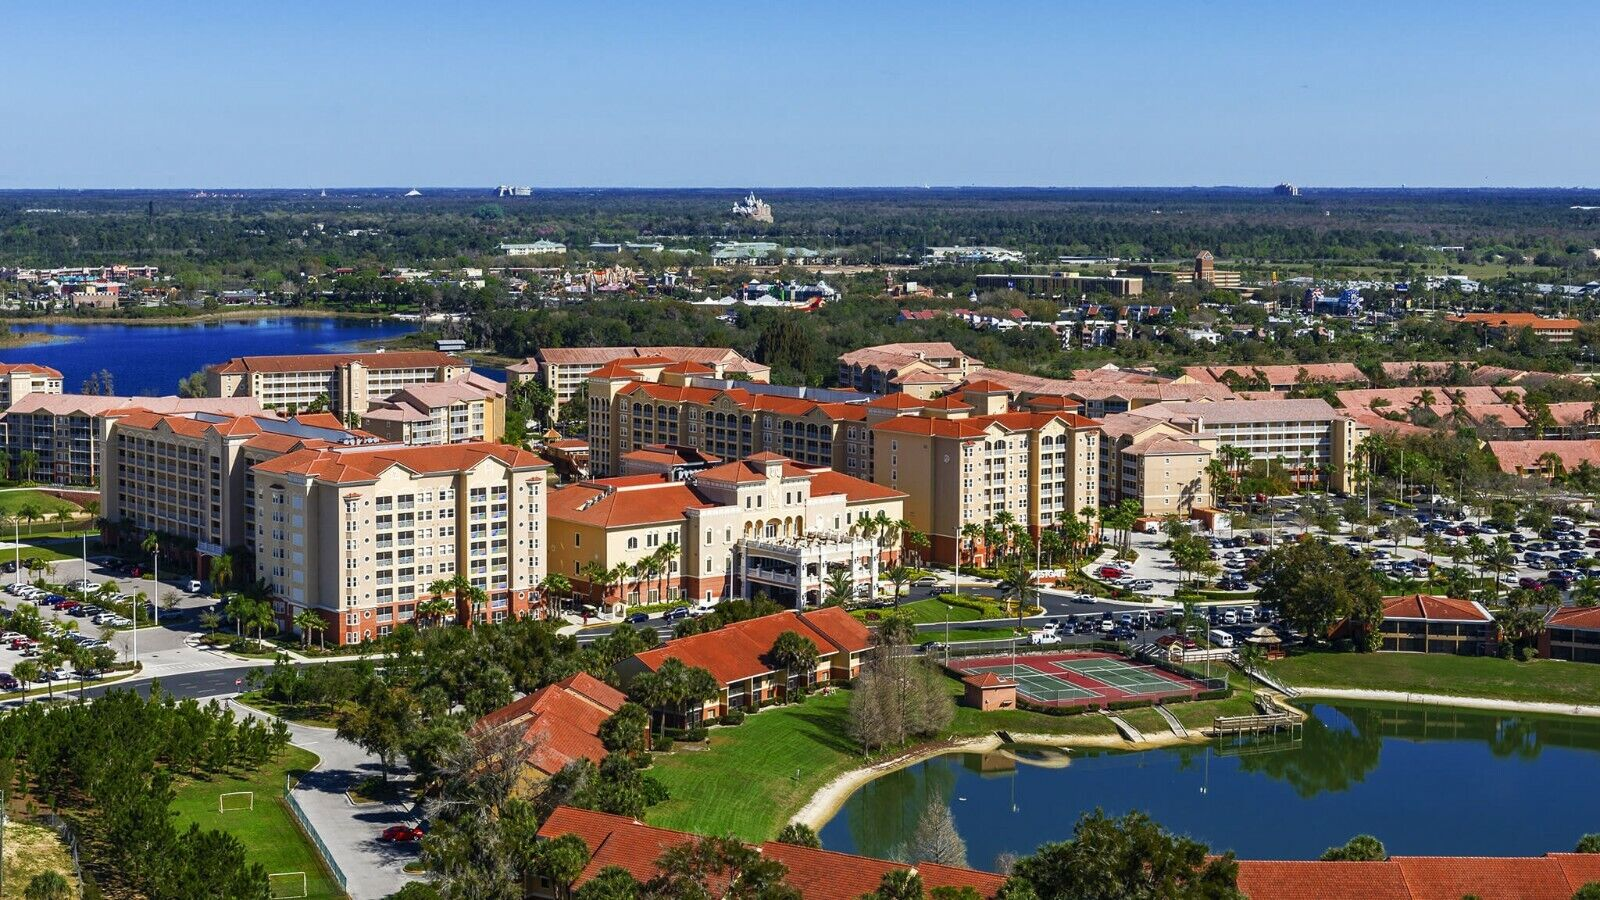 WESTGATE TOWN CENTER RESORT 5B/5B ANNUAL FLOAT FREE 2021 USE KISSIMMEE FLORIDA - $296.00